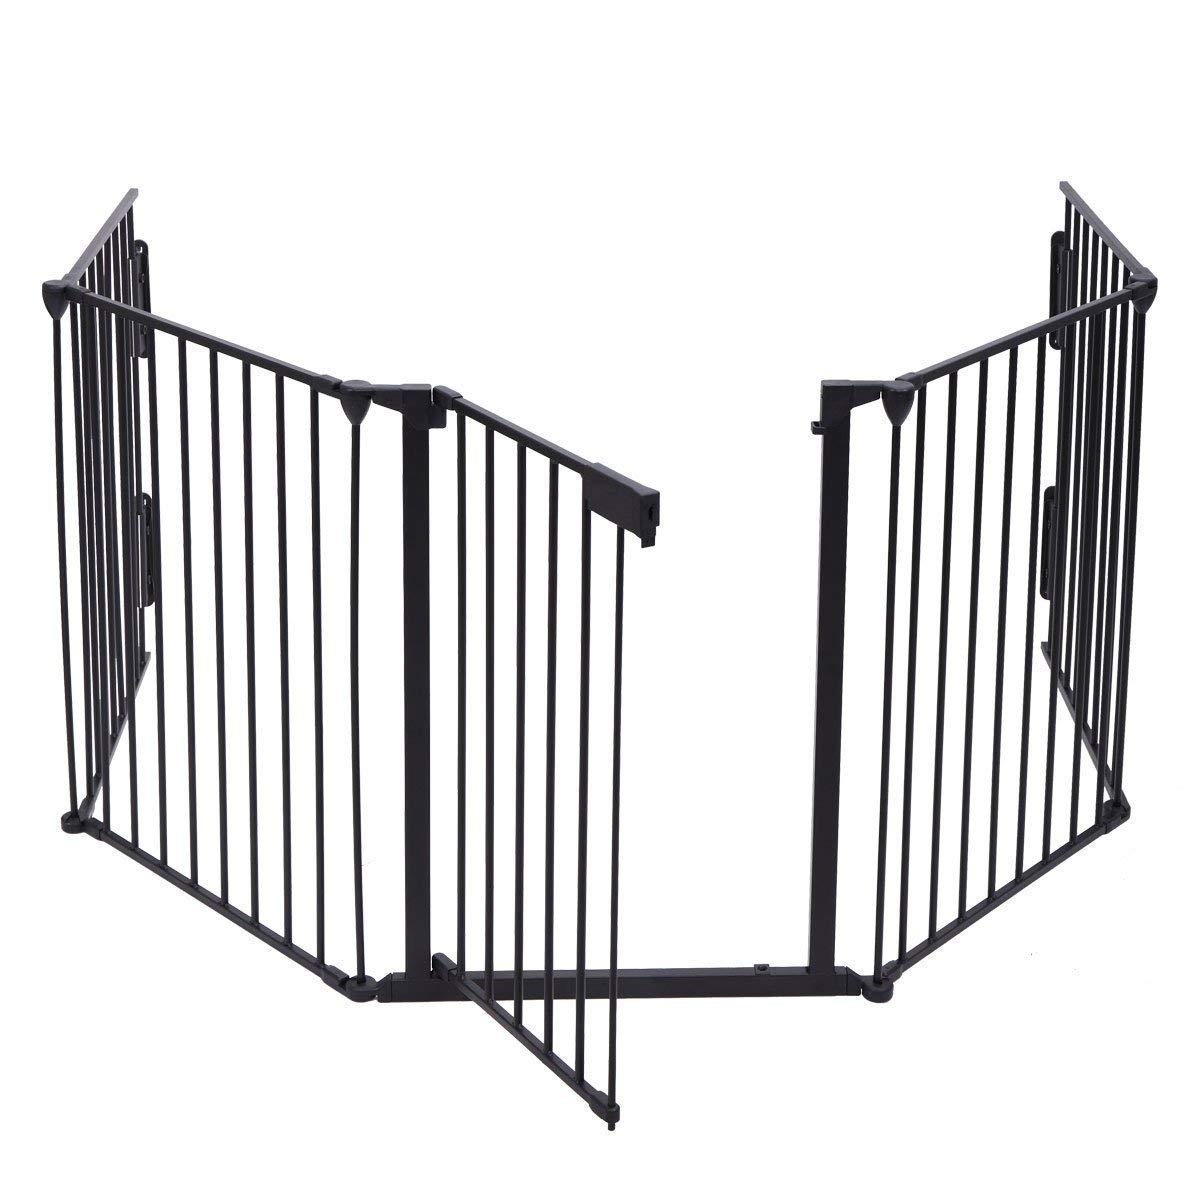 Black Safety Gate Fireplace Fence Hearth Guard for Baby Pet Dog Cat BBQ Metal Fire Gate Protection Fireguard 5 Sides